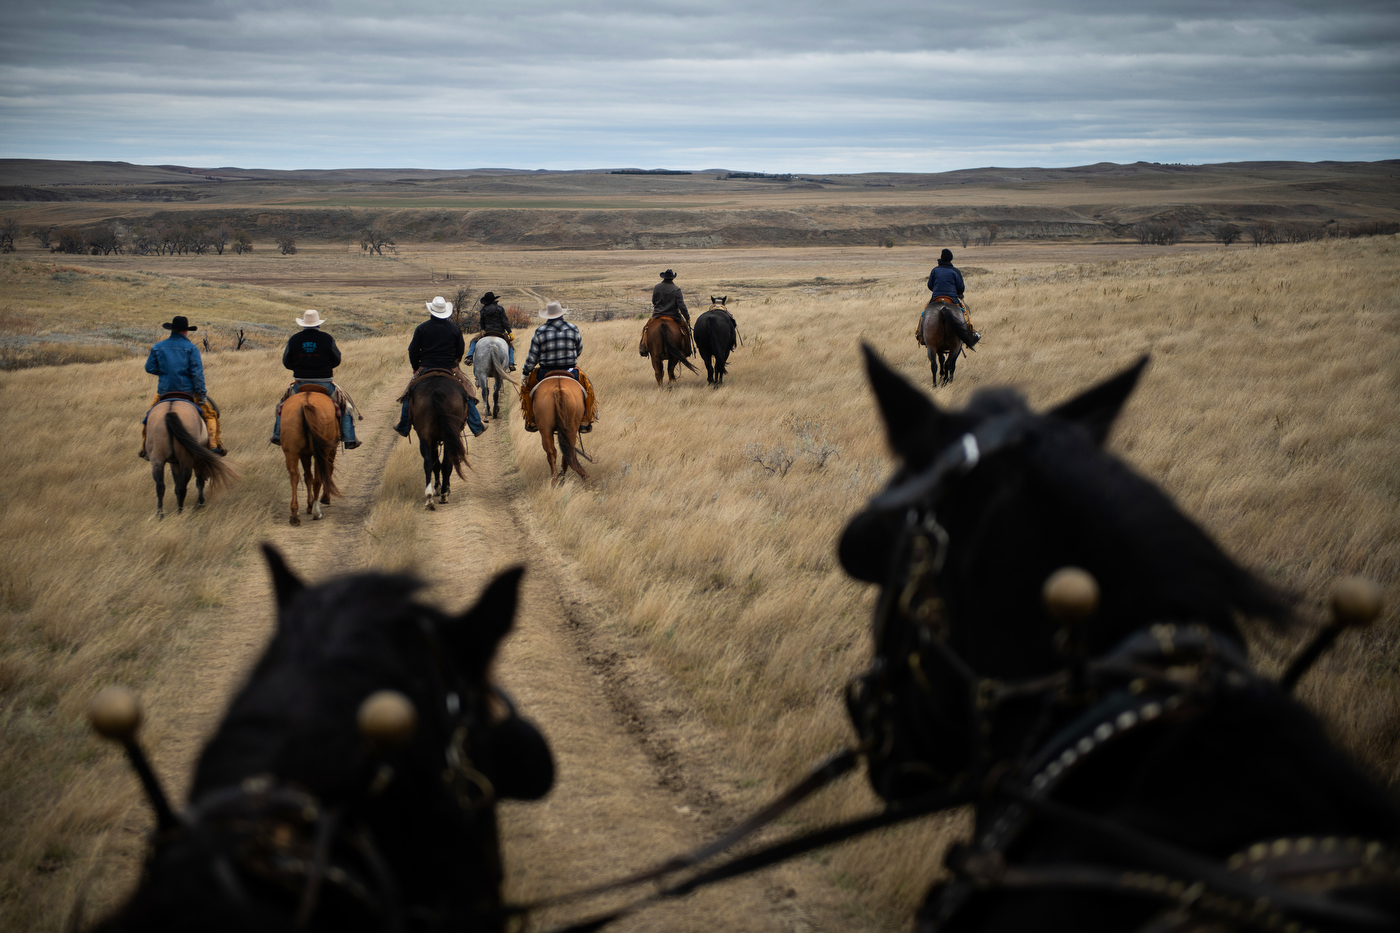 Pallbearers for Gregg Seim, 61, ride horses and lead a riderless horse to his internment at the Seim Family Cemetery in Shadehill, SD.